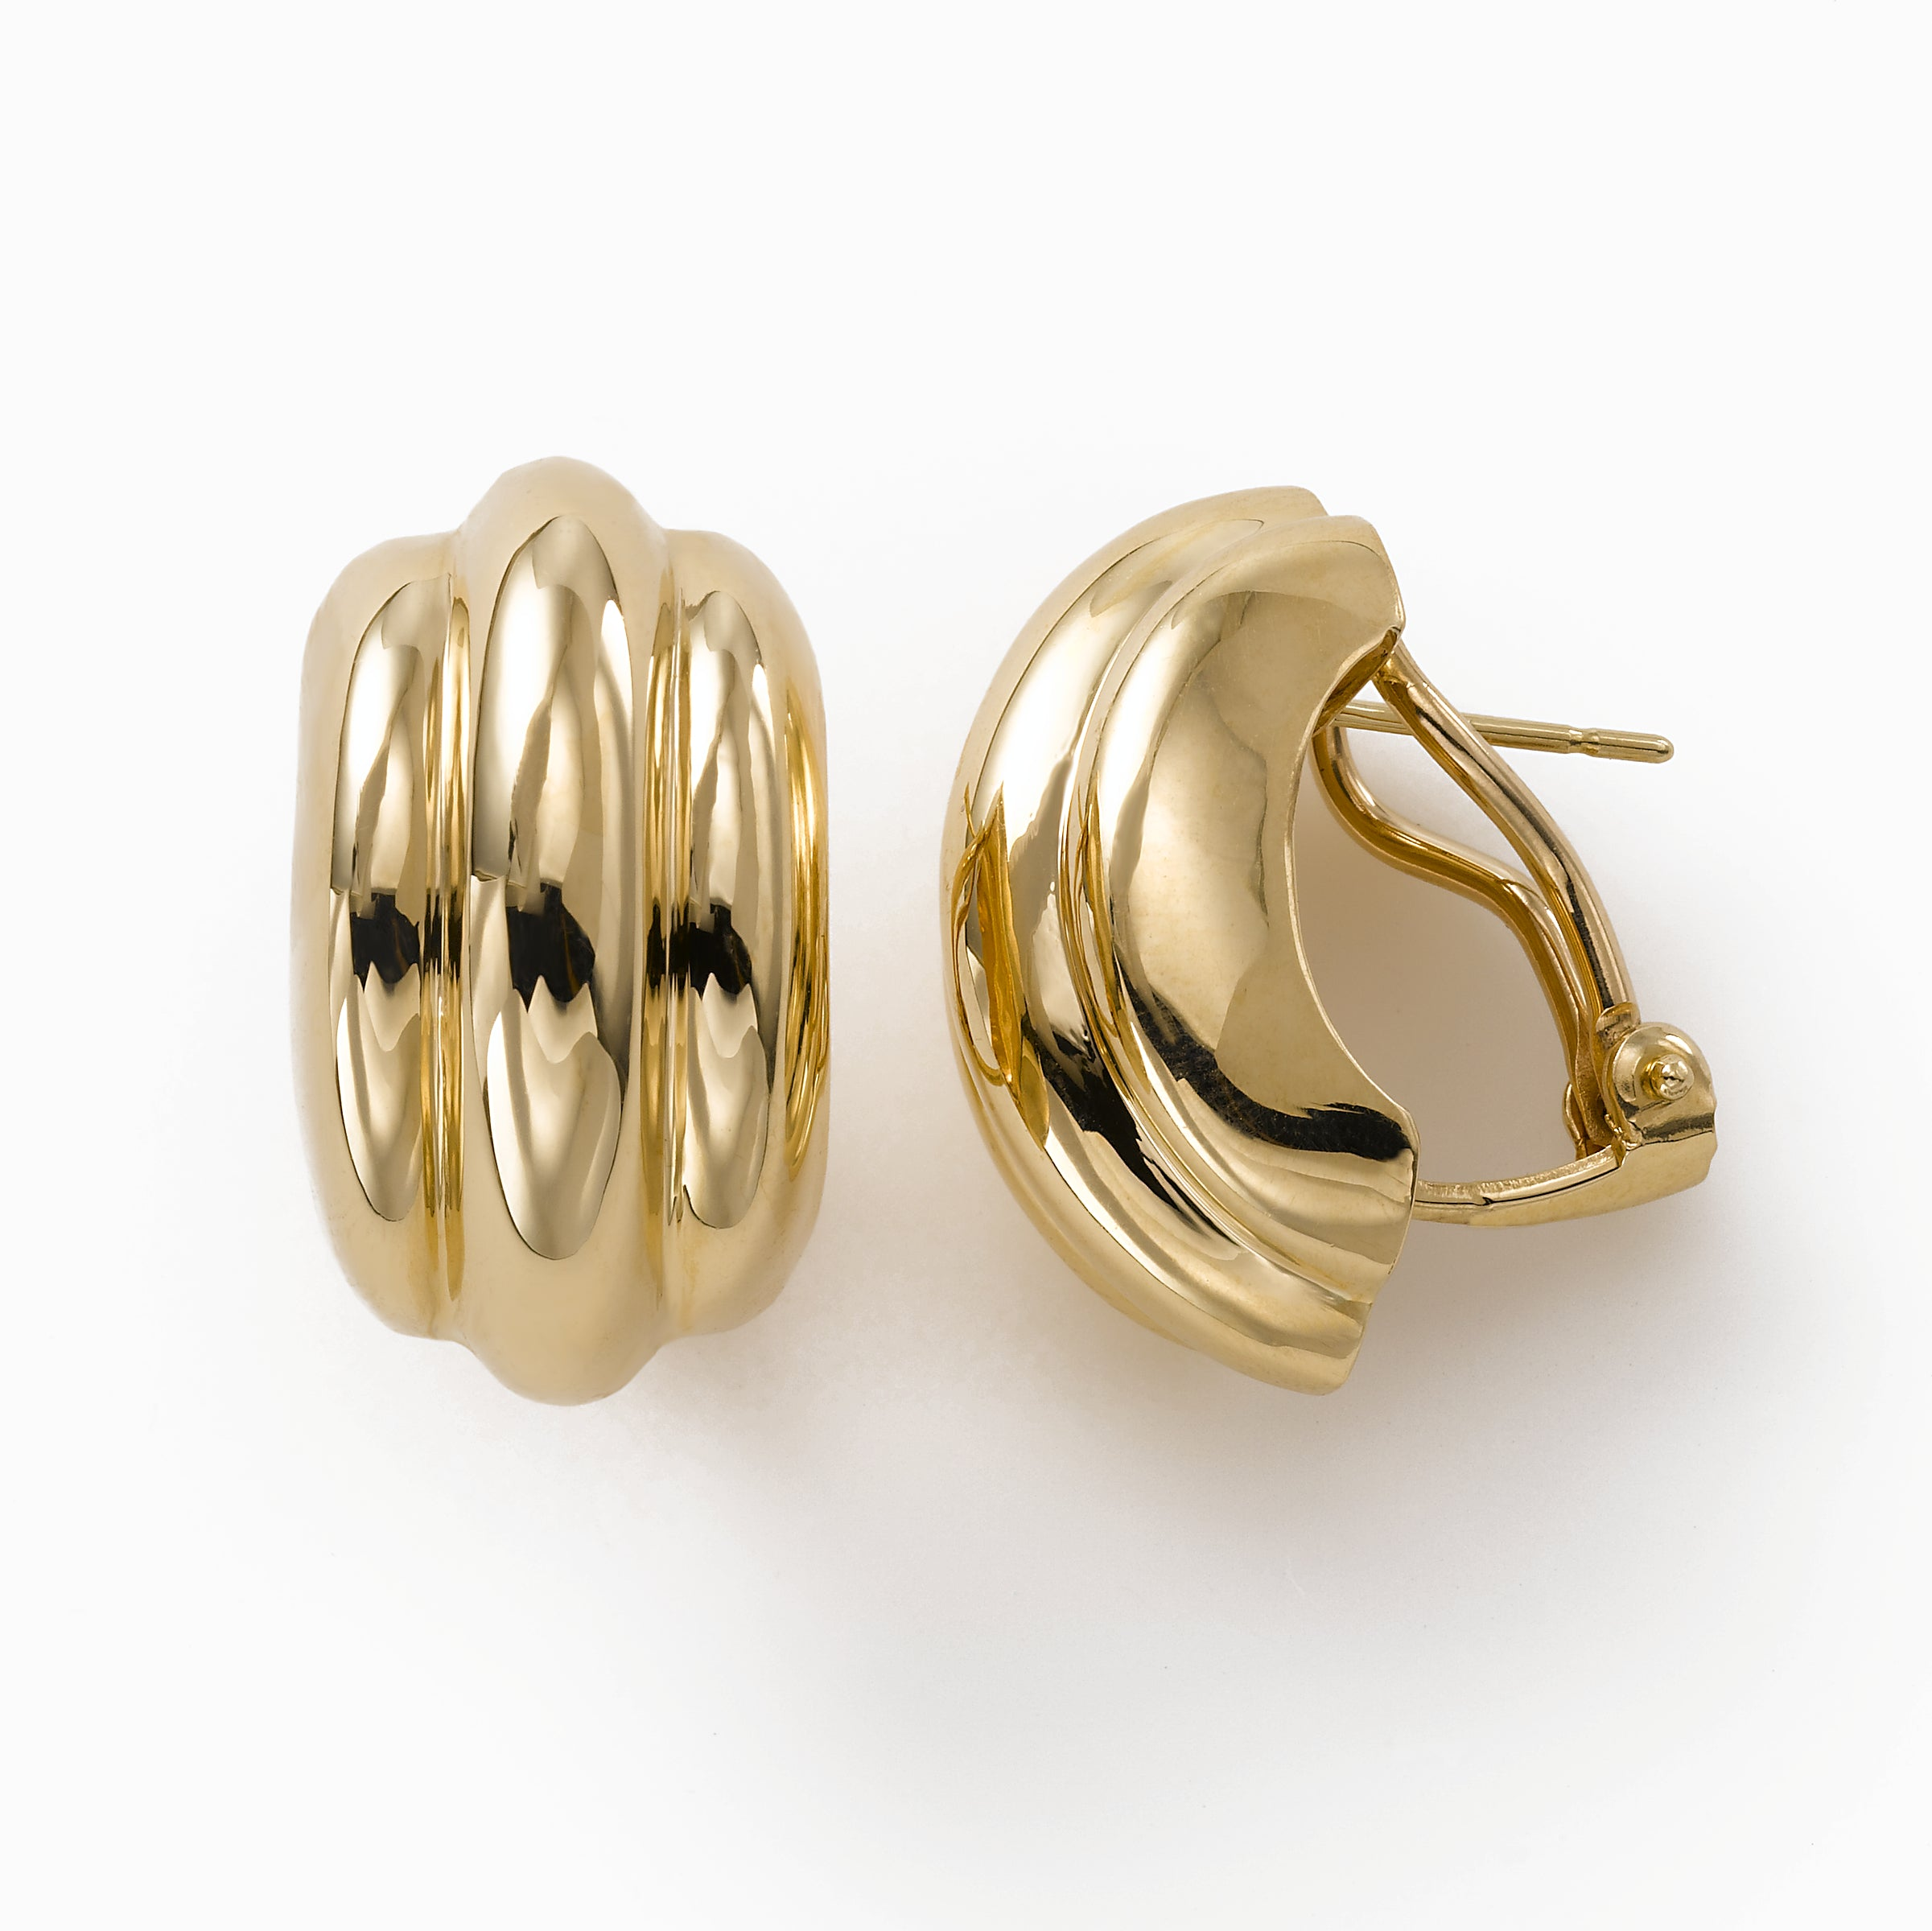 Puffed Ribbed Button Earring with Clip Post, 14K Yellow Gold